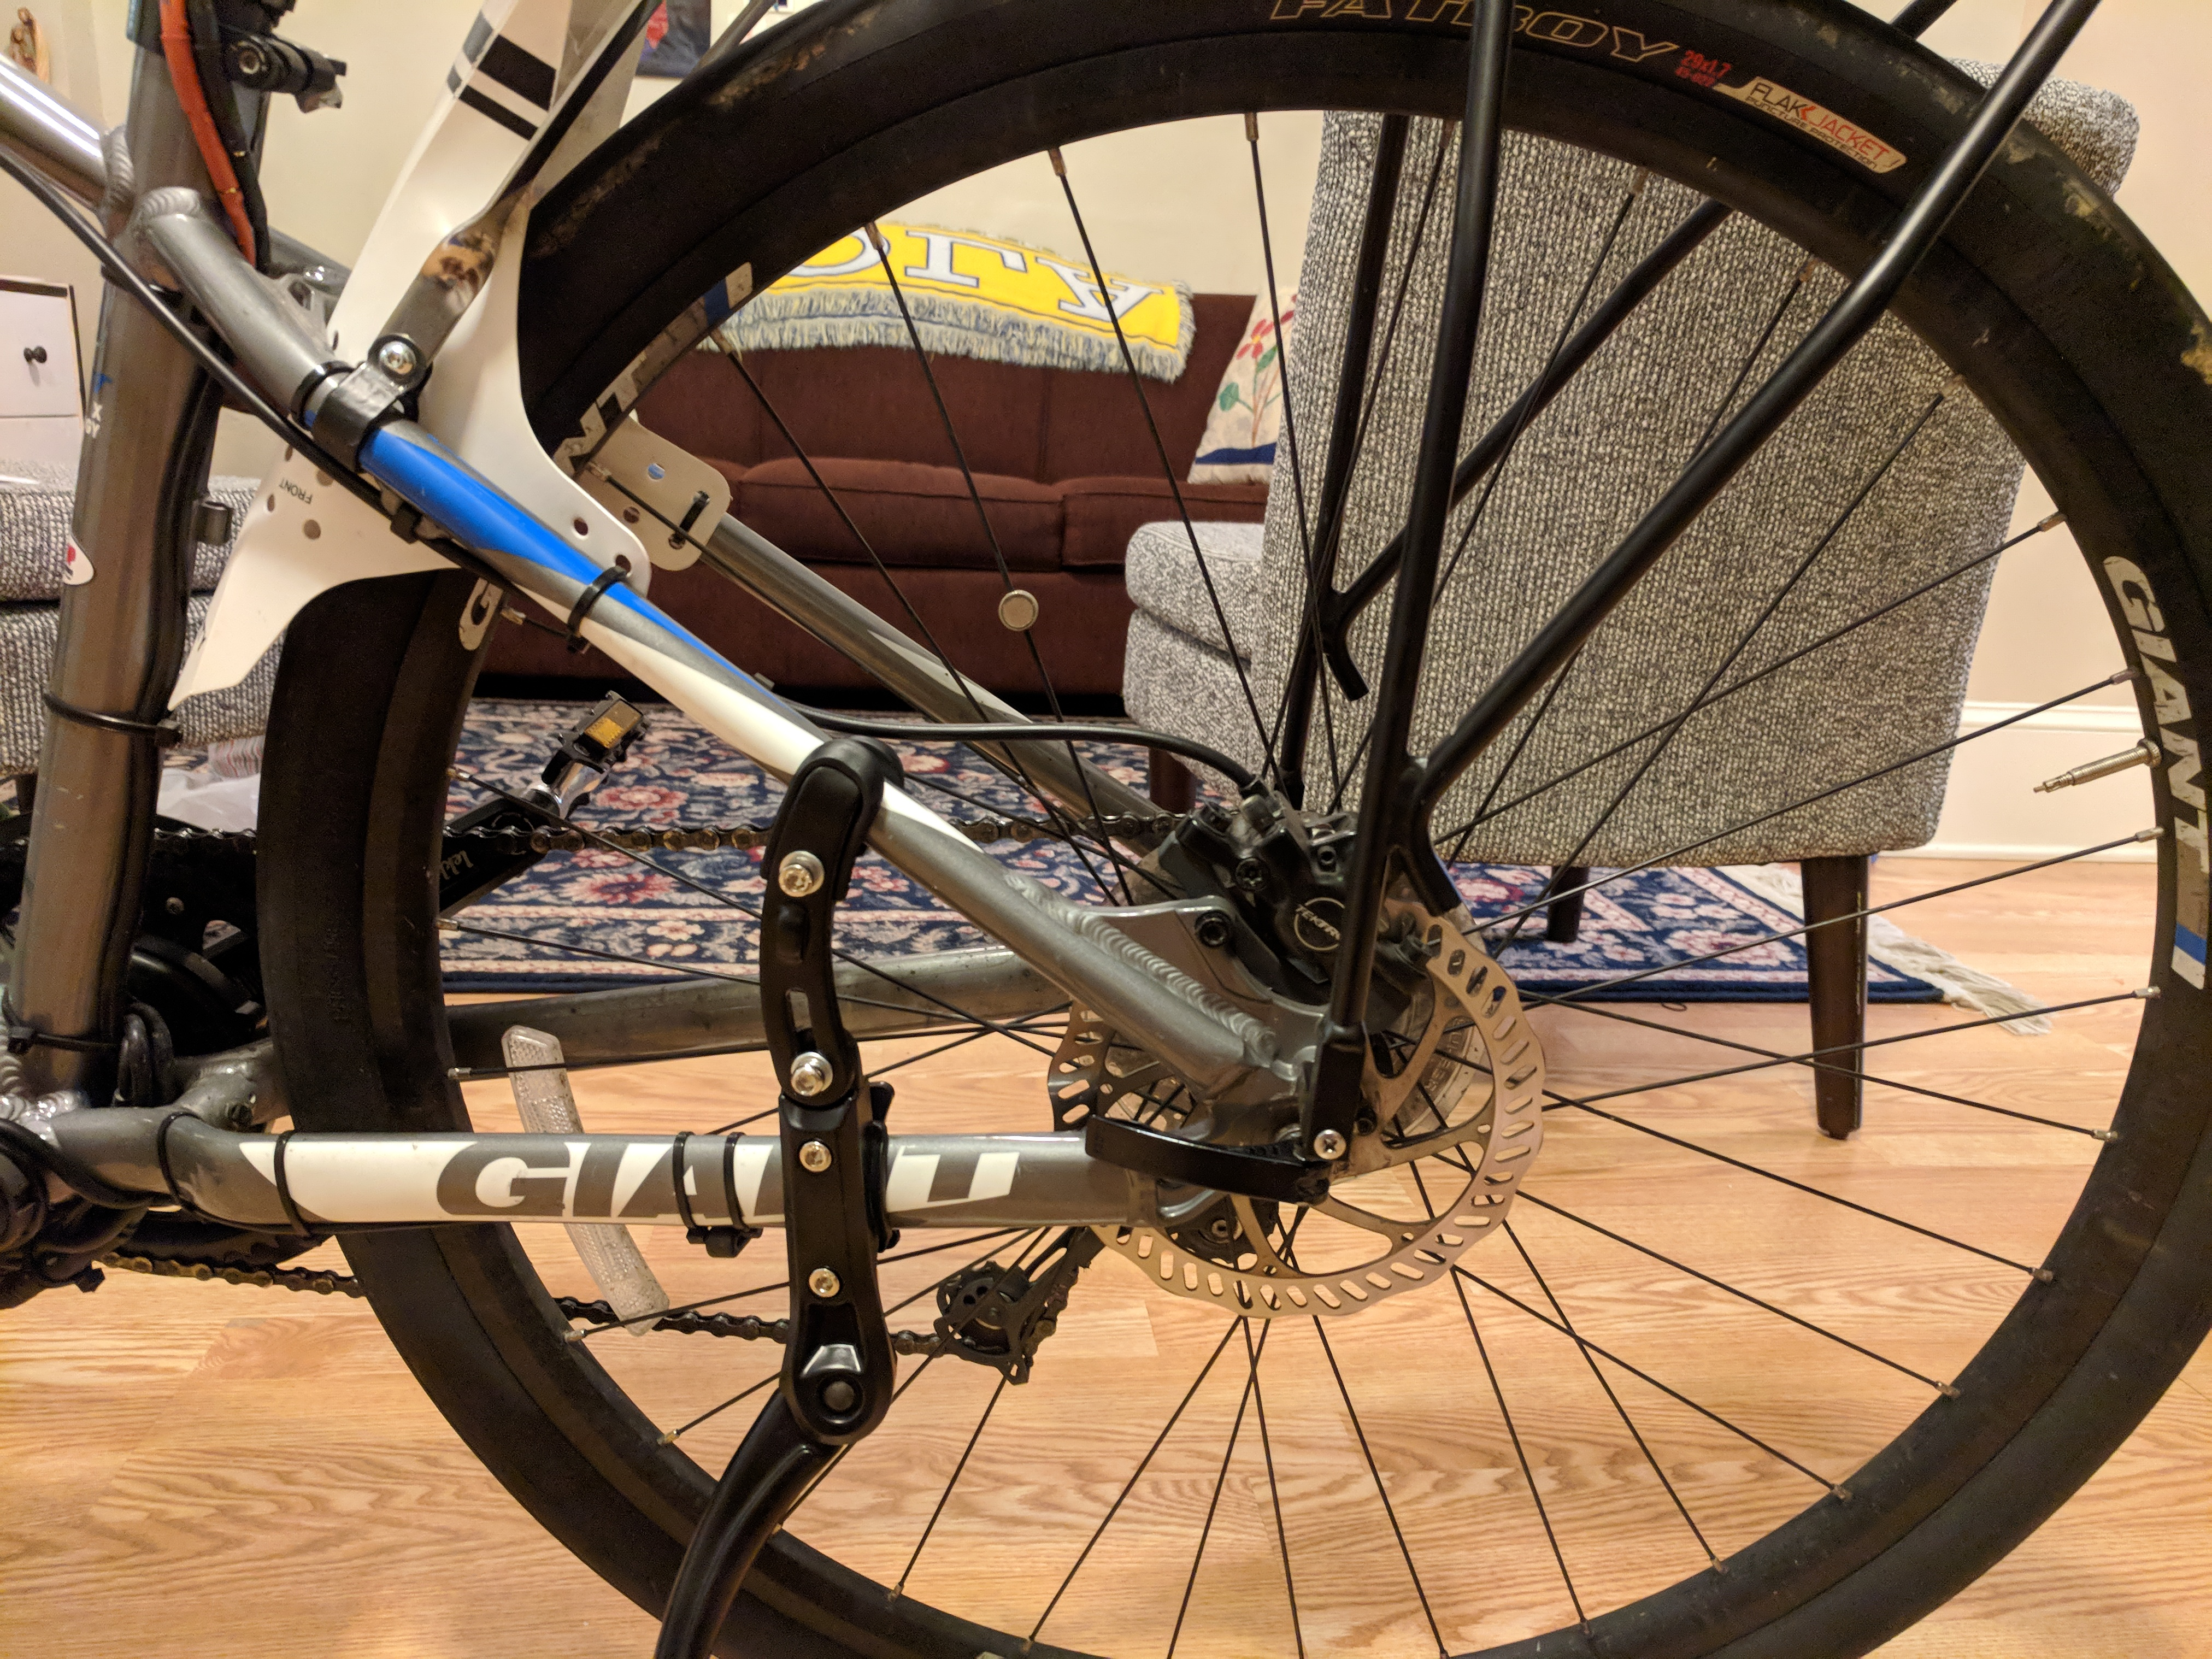 BBS02 Build | Electric Bike Forum - Q&A, Help, Reviews and